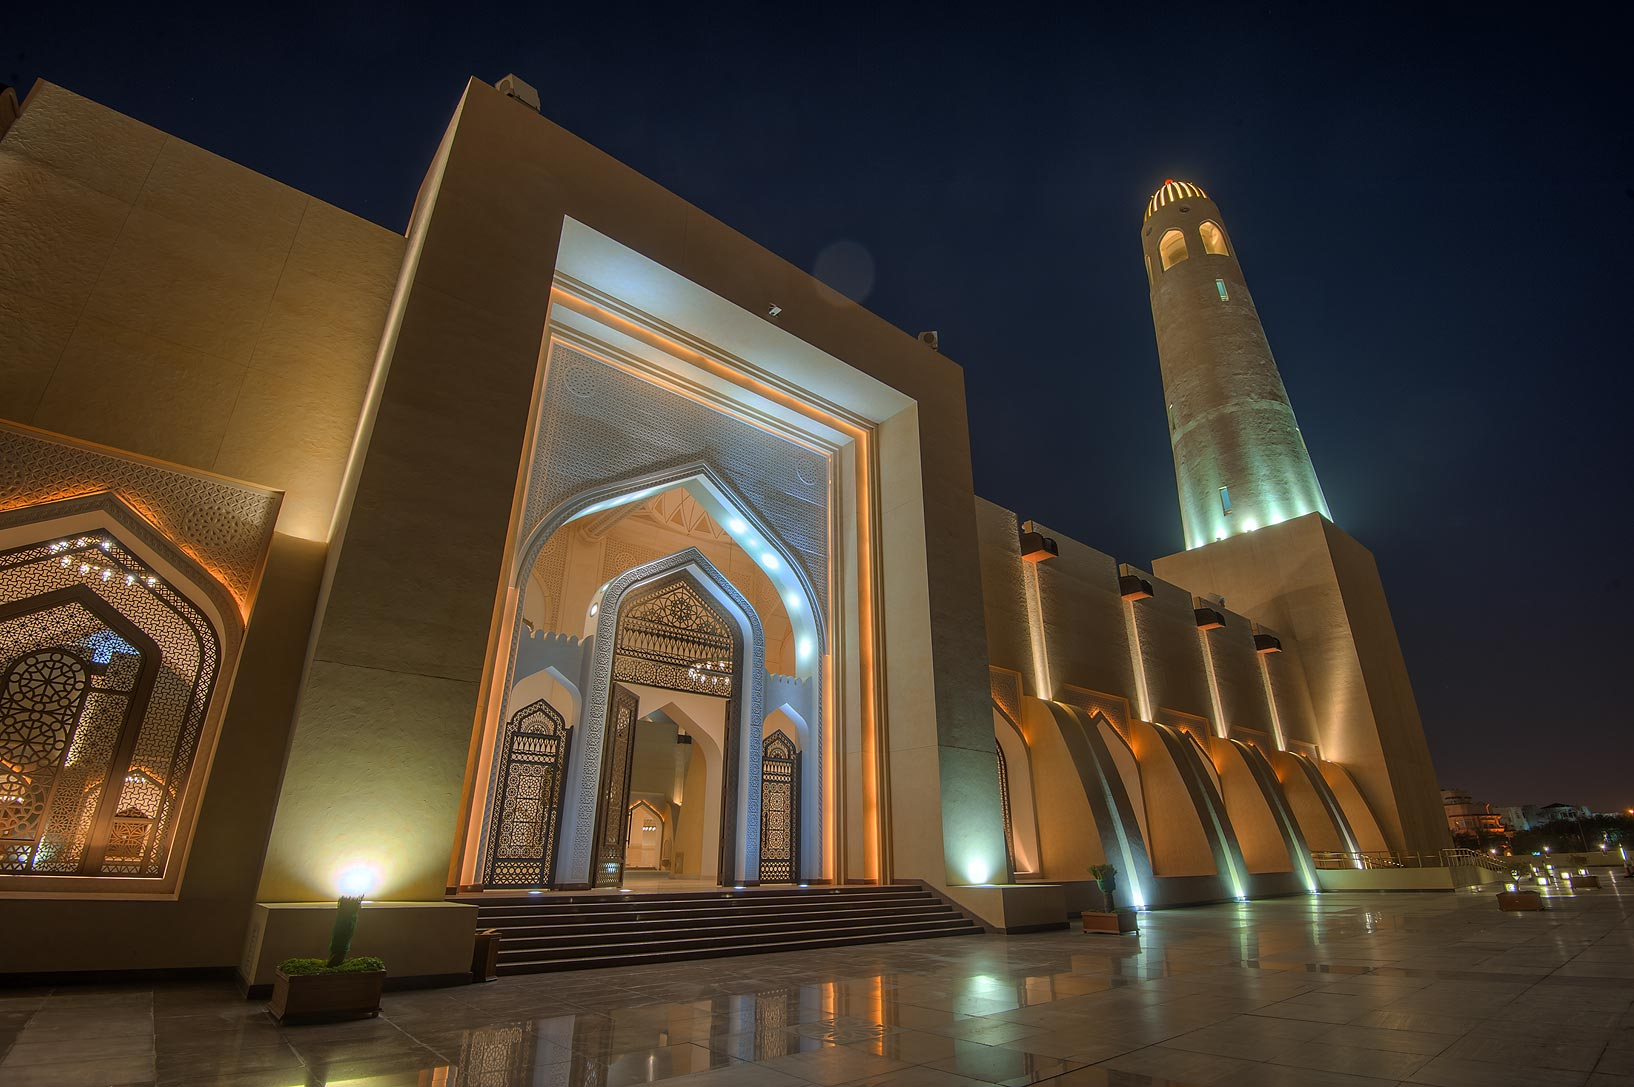 Entrance of courtyard courtyard of State Mosque...Ibn Abdul Wahhab Mosque). Doha, Qatar